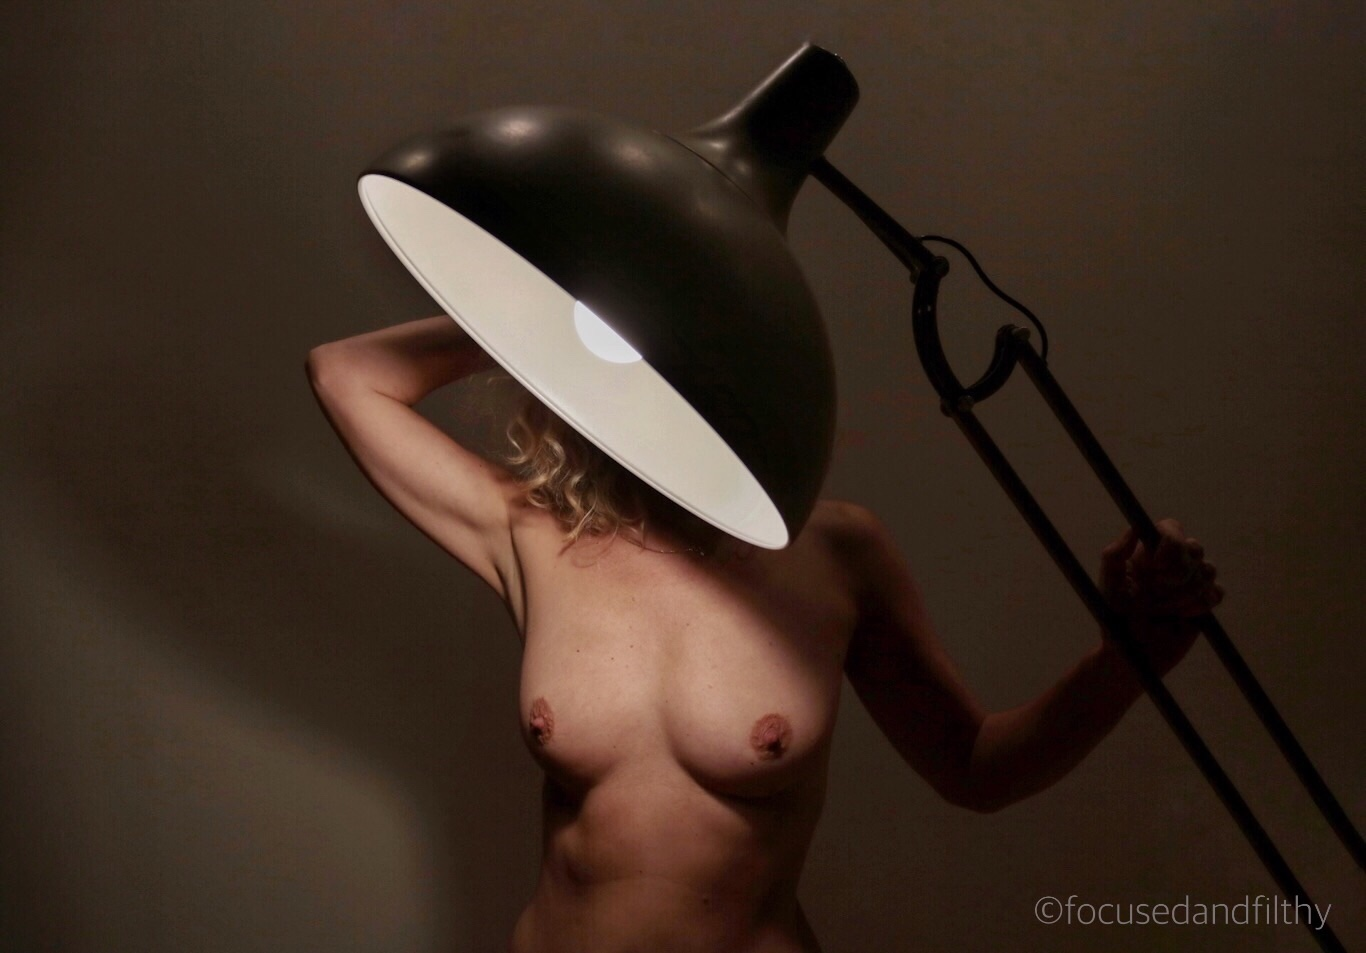 Colour photograph of a naked woman stood behind a gentle angle-poised lamp. The lamp is covering her face and head but the light is on her body showing her naked breasts and she is holding one arm up to her head and one holding the arm of the large lamp.